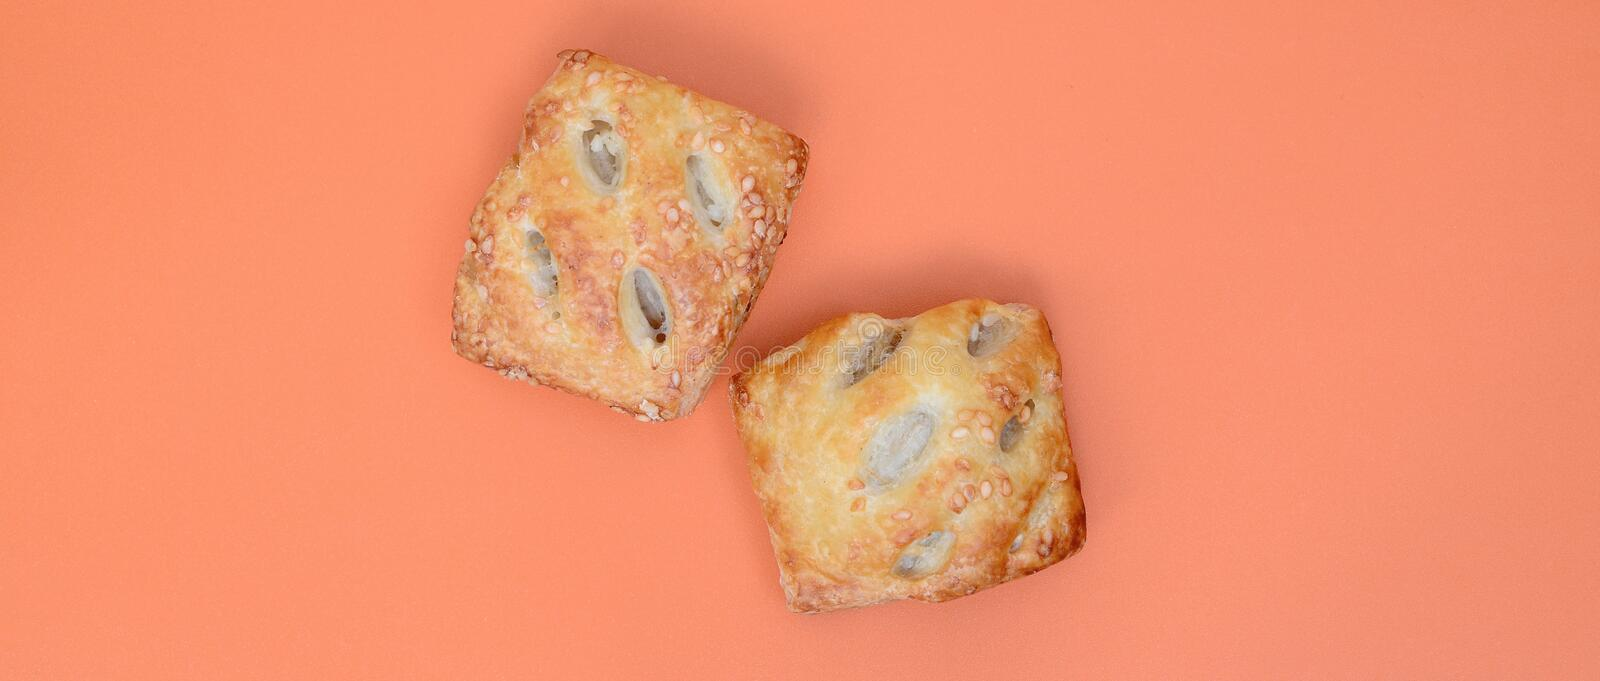 A satisfying meat patty, which combines an airy puff pastry and. A delicate pork filling with onions. Baking on an orange background royalty free stock photos